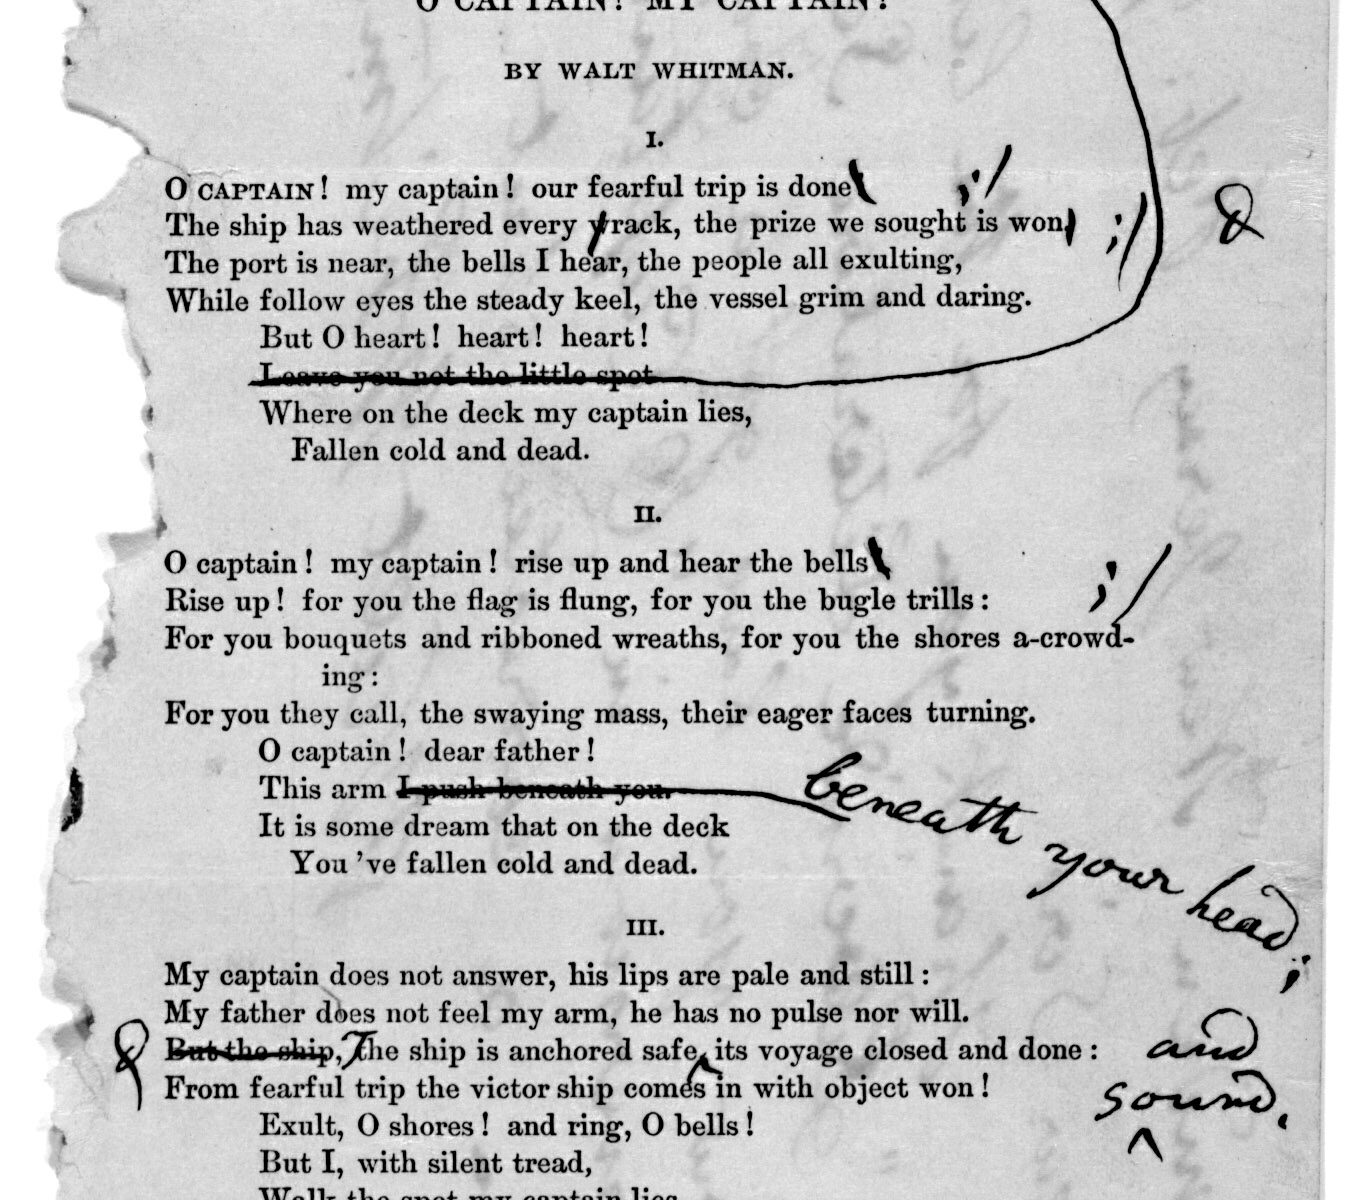 scan of Letter_and_corrected_reprint_of_Walt_Whitman's_O_Captain